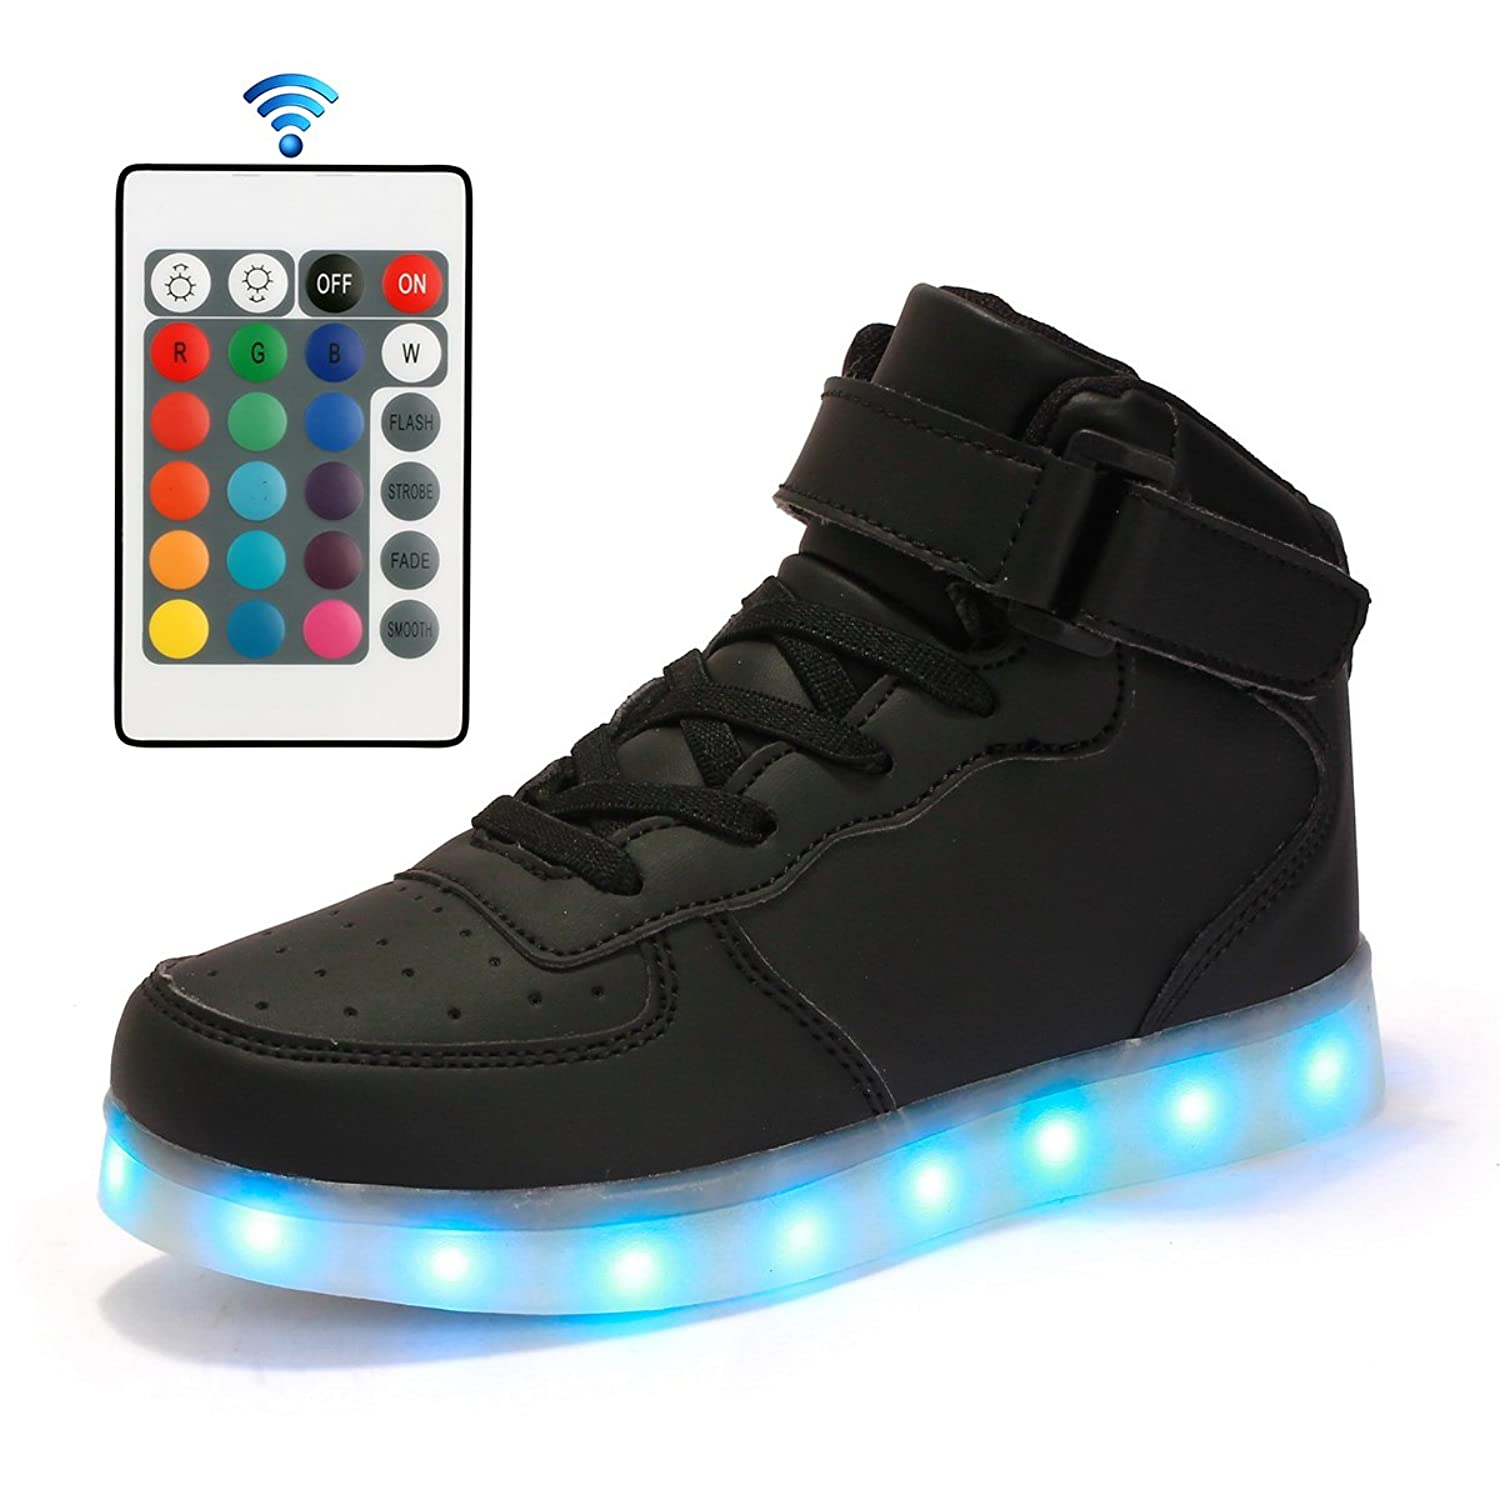 98e66bd93f 50%OFF Qkettle Kids 20 Models LED Shoes Boys Girls Light Up Sneakers With  Remote Control